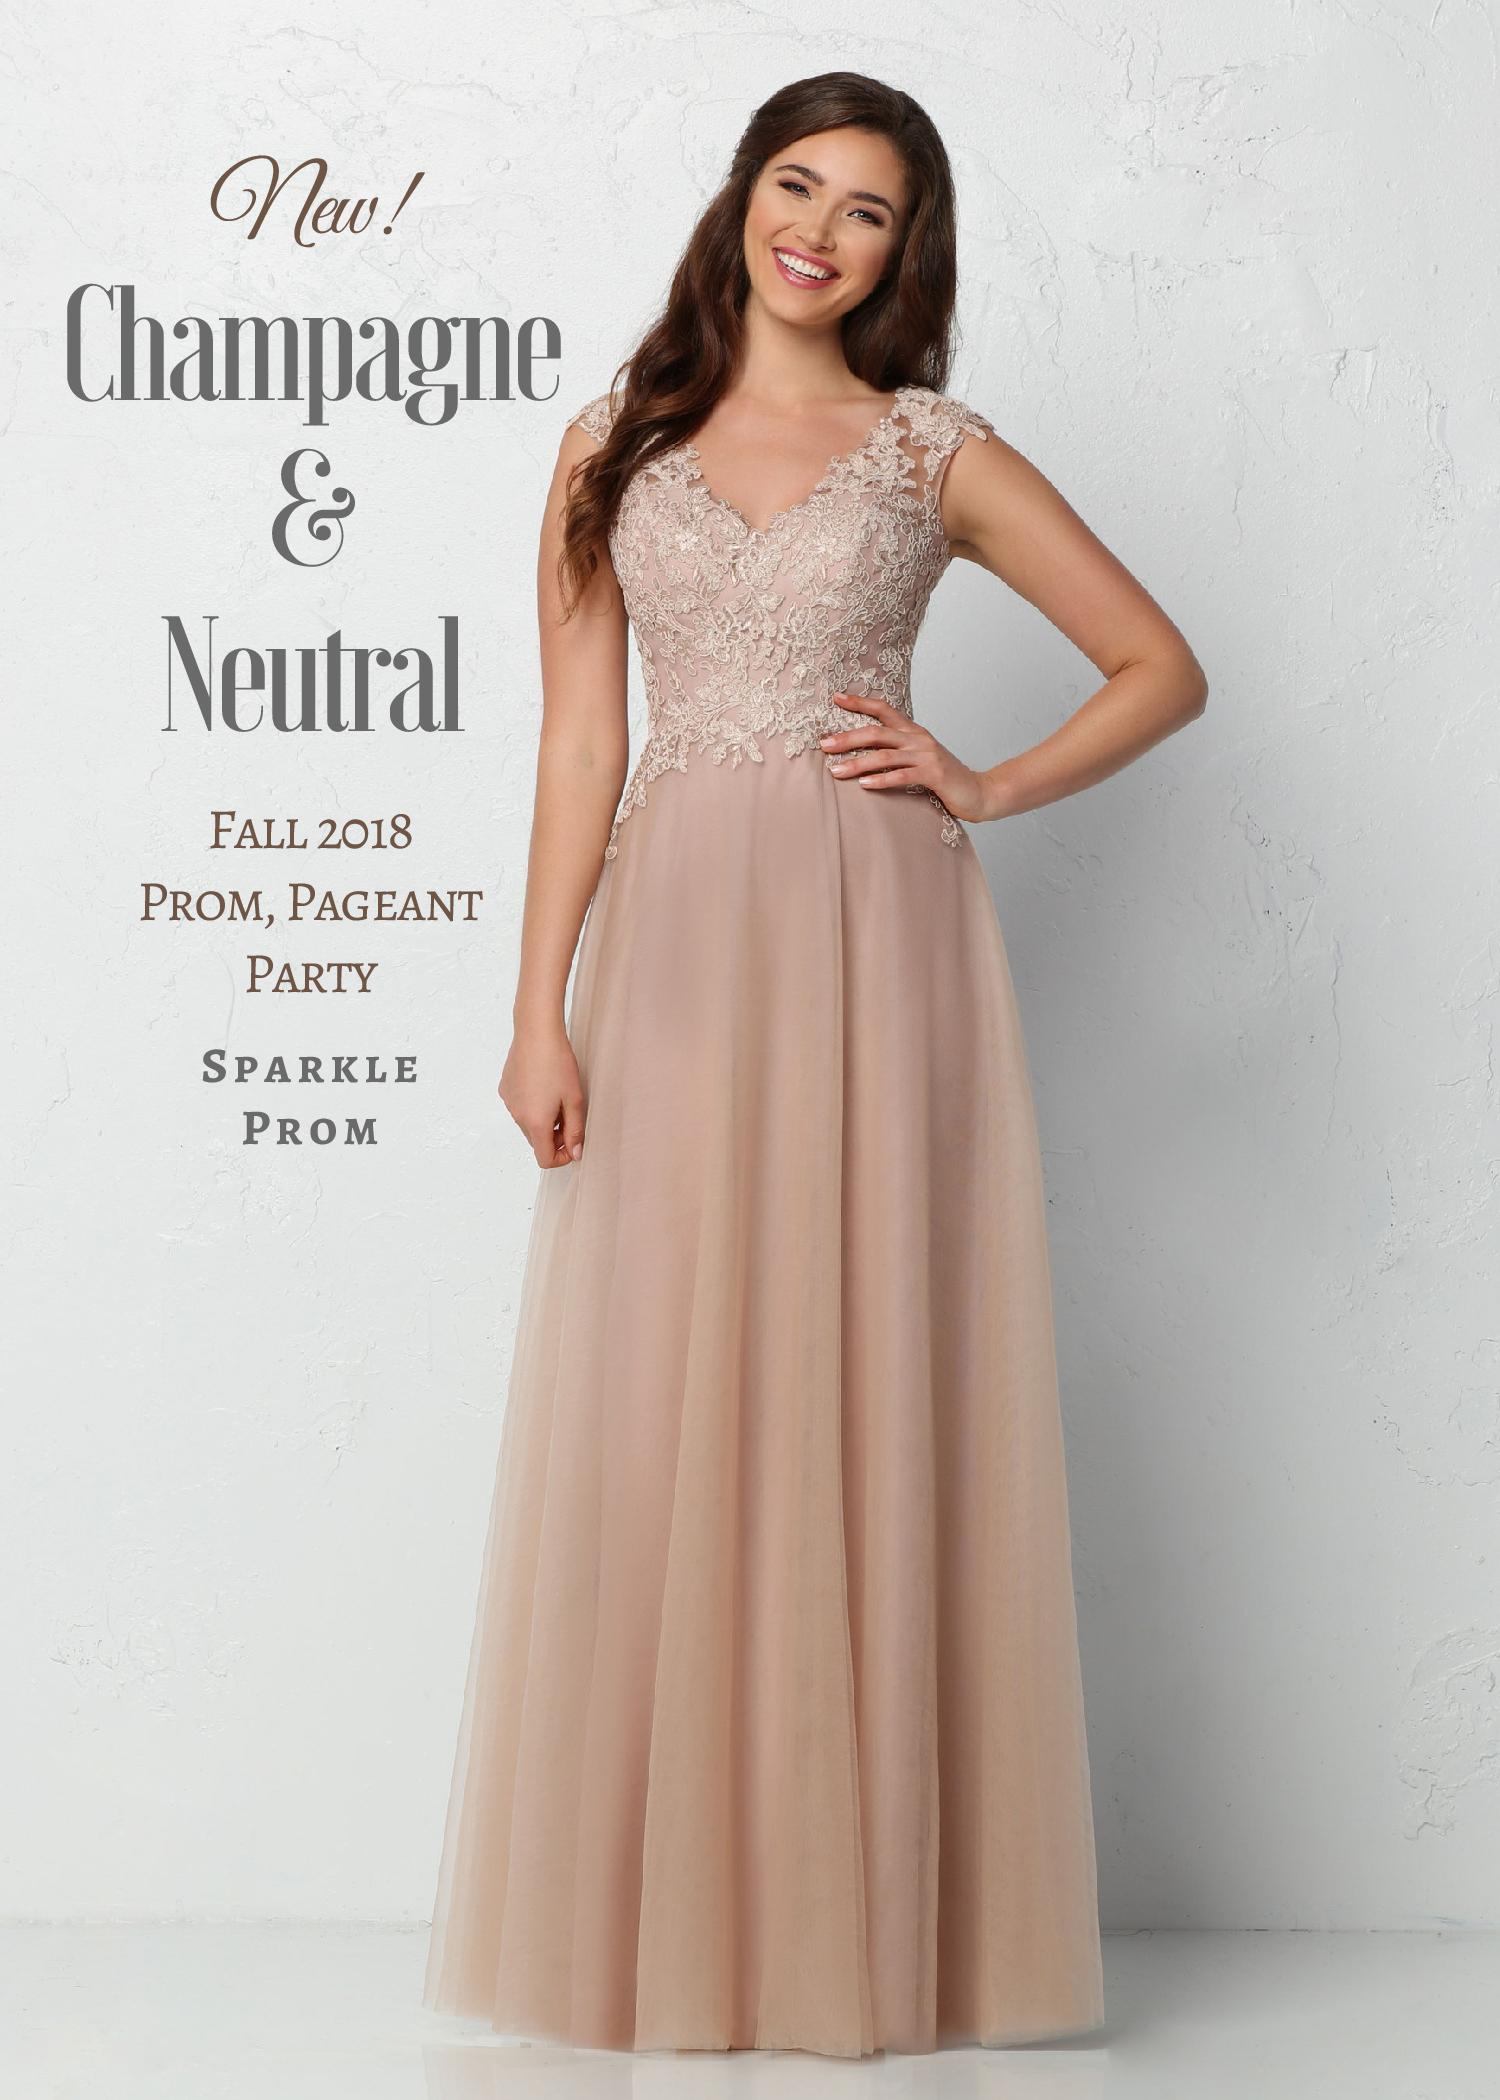 New! 2018 Long Champagne & Neutral Prom/Party Dresses – Sparkle Prom Blog